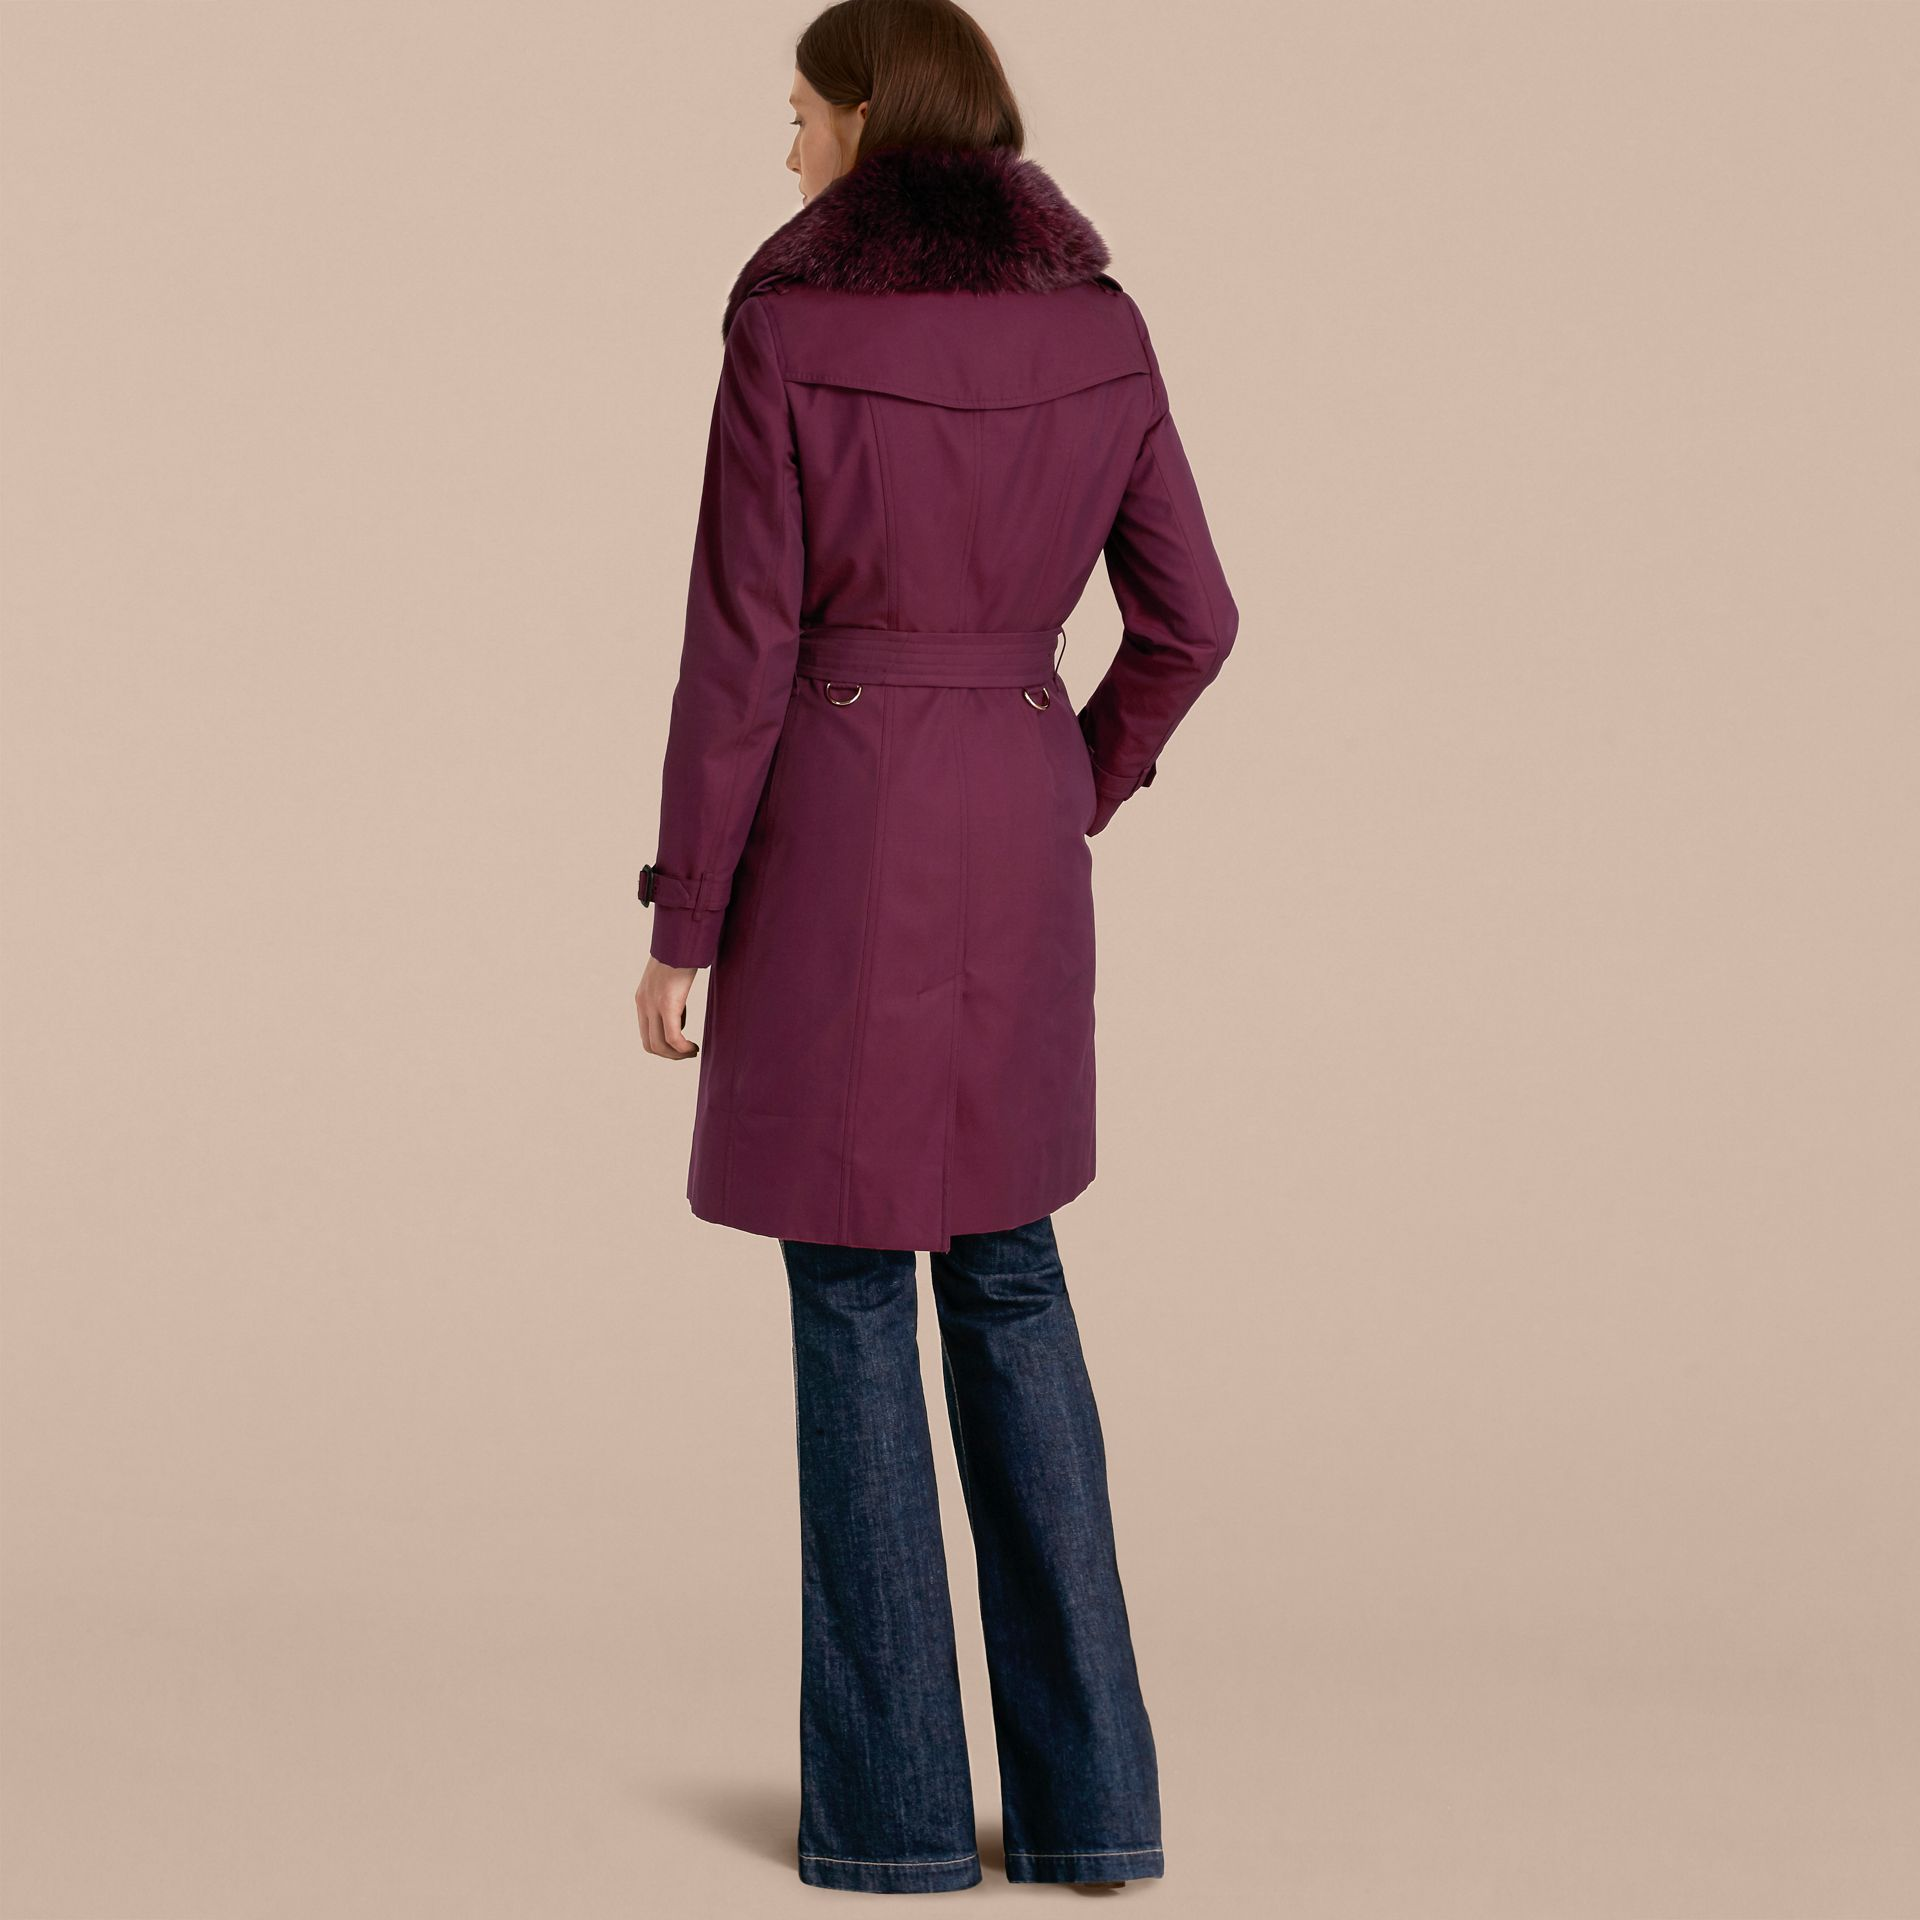 Crimson Cotton Gabardine Trench Coat with Detachable Fur Trim Crimson - gallery image 3